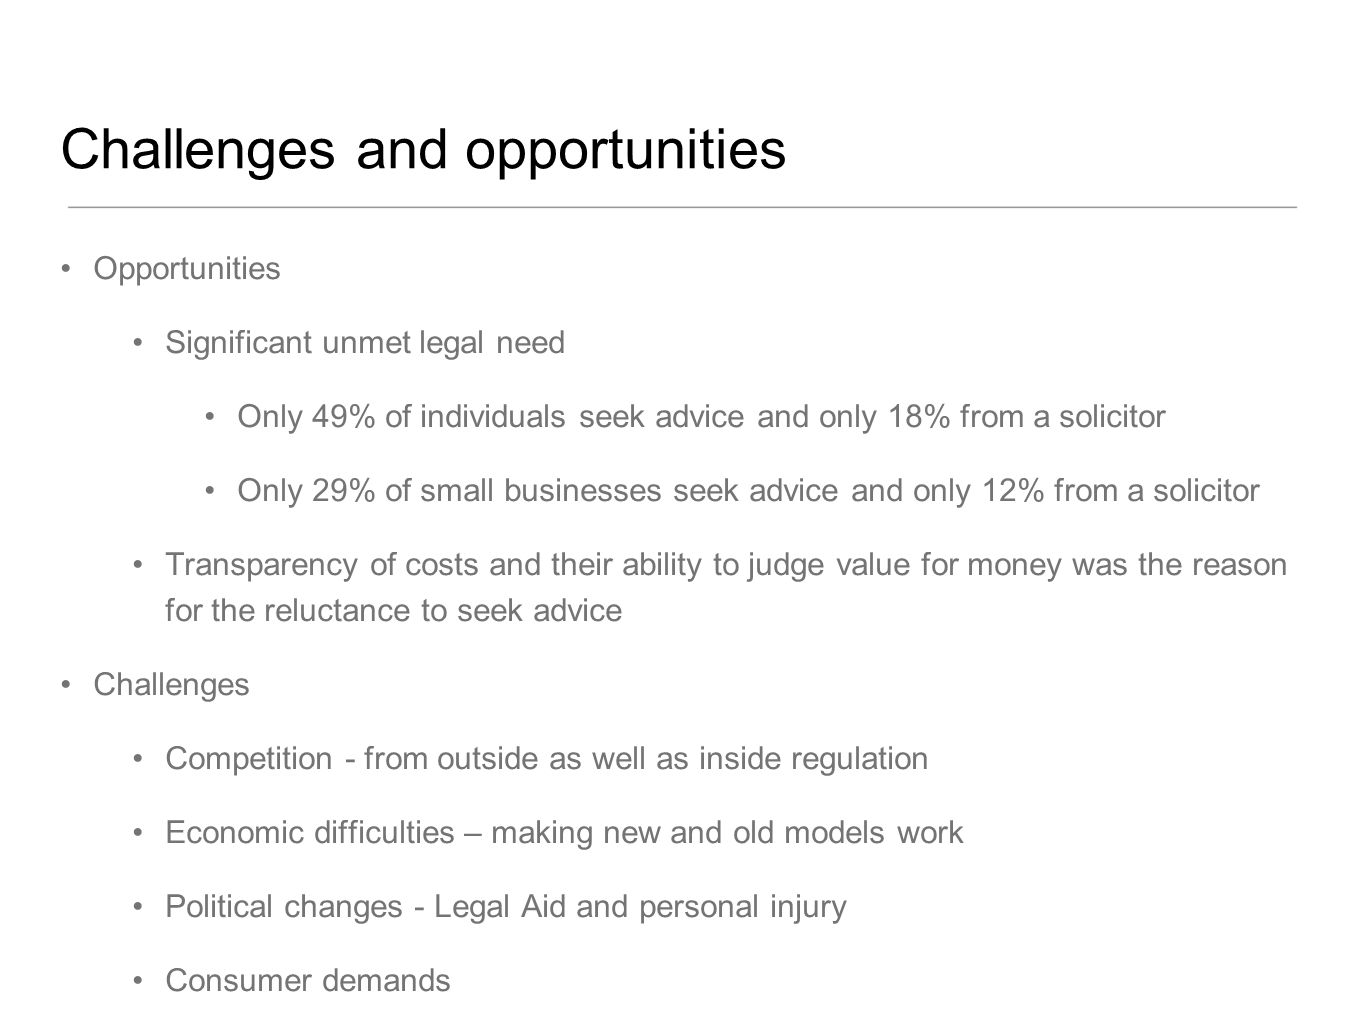 Challenges and opportunities Opportunities Significant unmet legal need Only 49% of individuals seek advice and only 18% from a solicitor Only 29% of small businesses seek advice and only 12% from a solicitor Transparency of costs and their ability to judge value for money was the reason for the reluctance to seek advice Challenges Competition - from outside as well as inside regulation Economic difficulties – making new and old models work Political changes - Legal Aid and personal injury Consumer demands